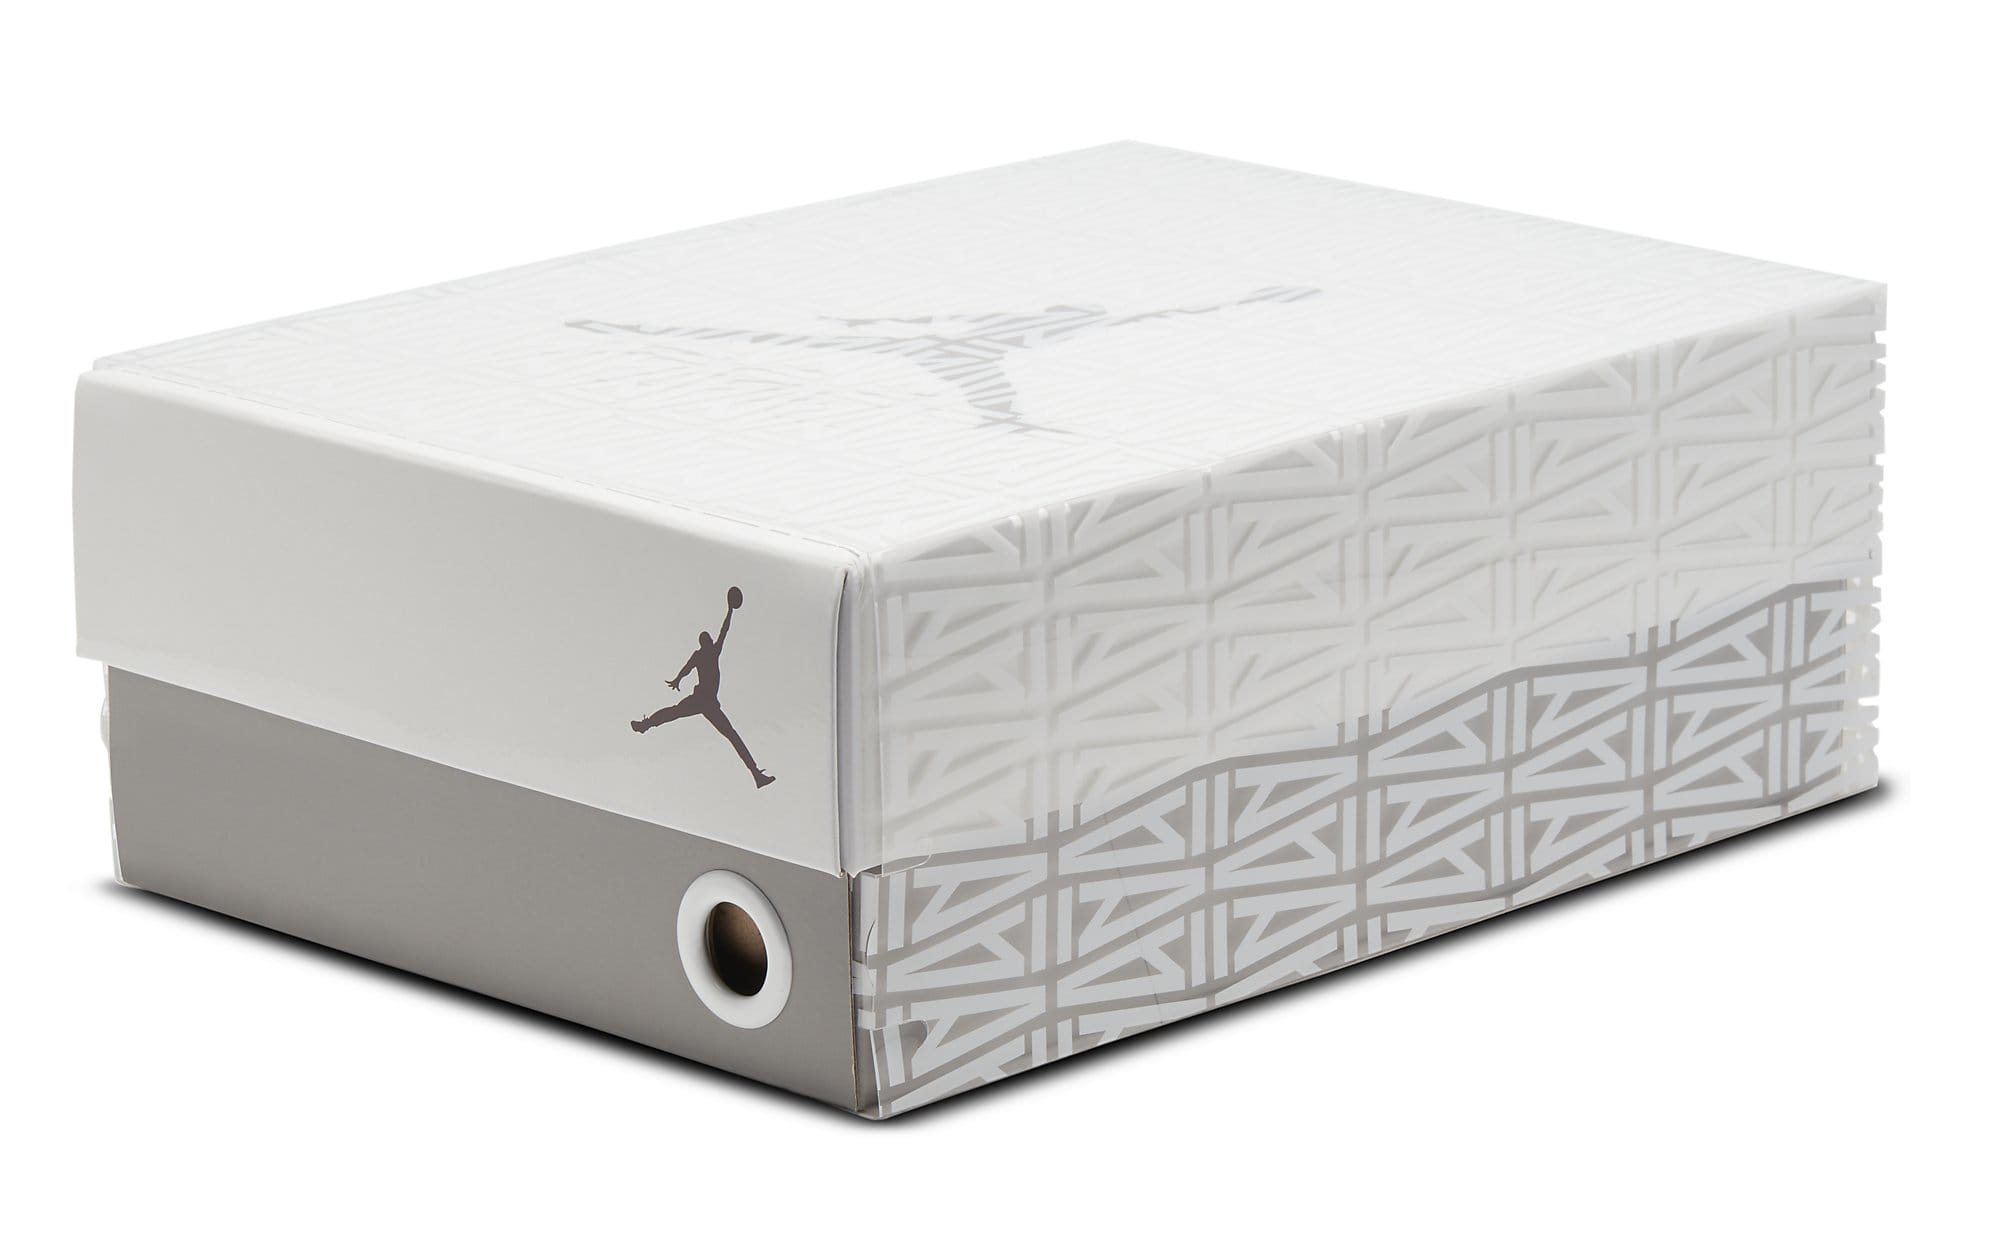 A Ma Maniere x Air Jordan 3 SP DH3434-110 Box